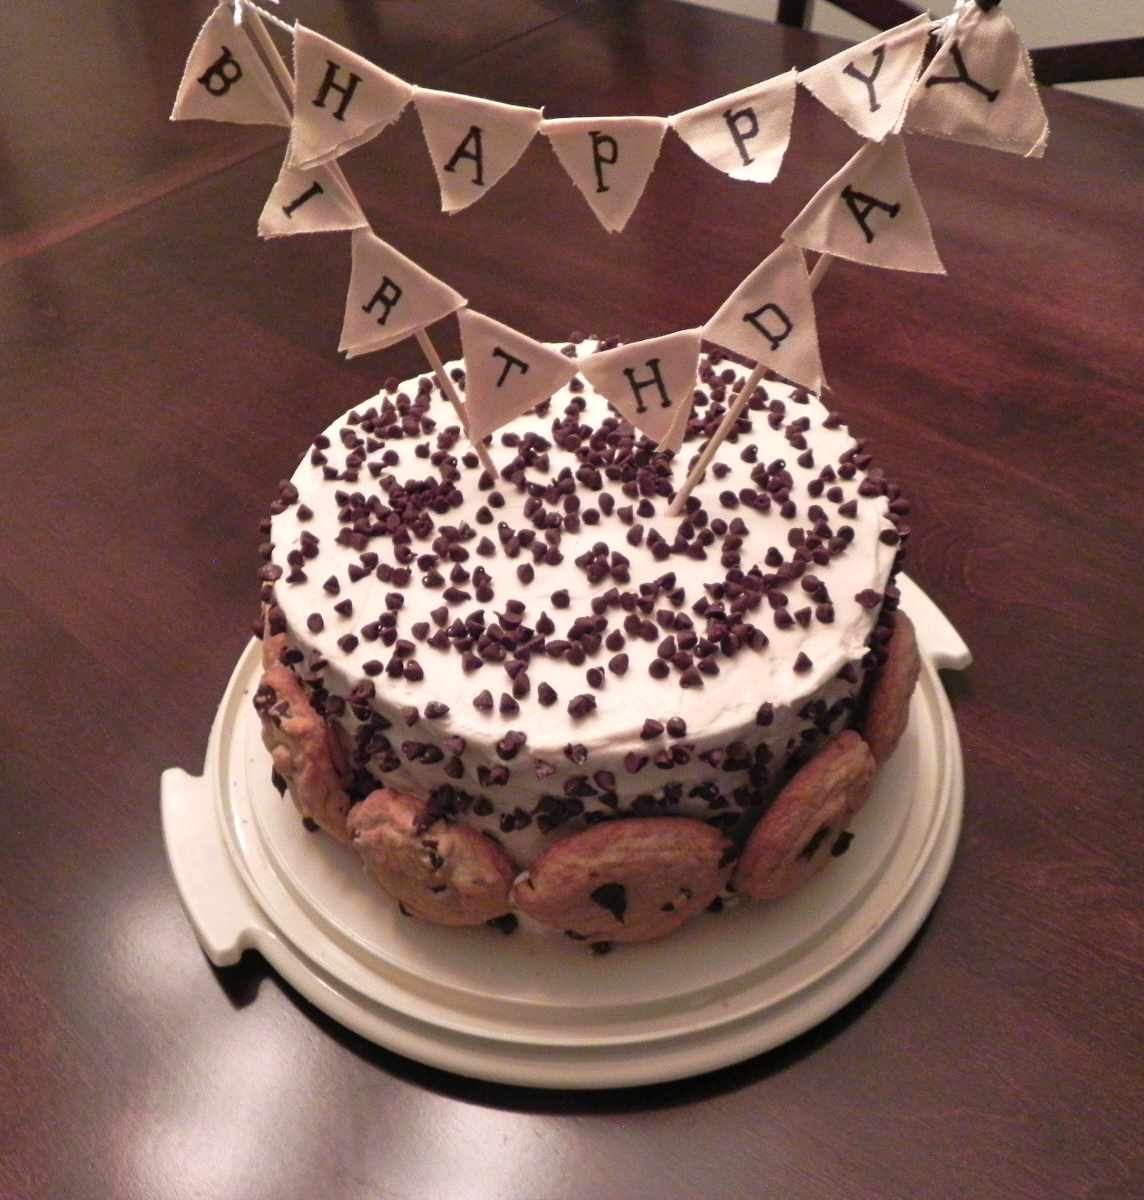 A Vegan Birthday Chocolate Vanilla Birthday Cake Coconut